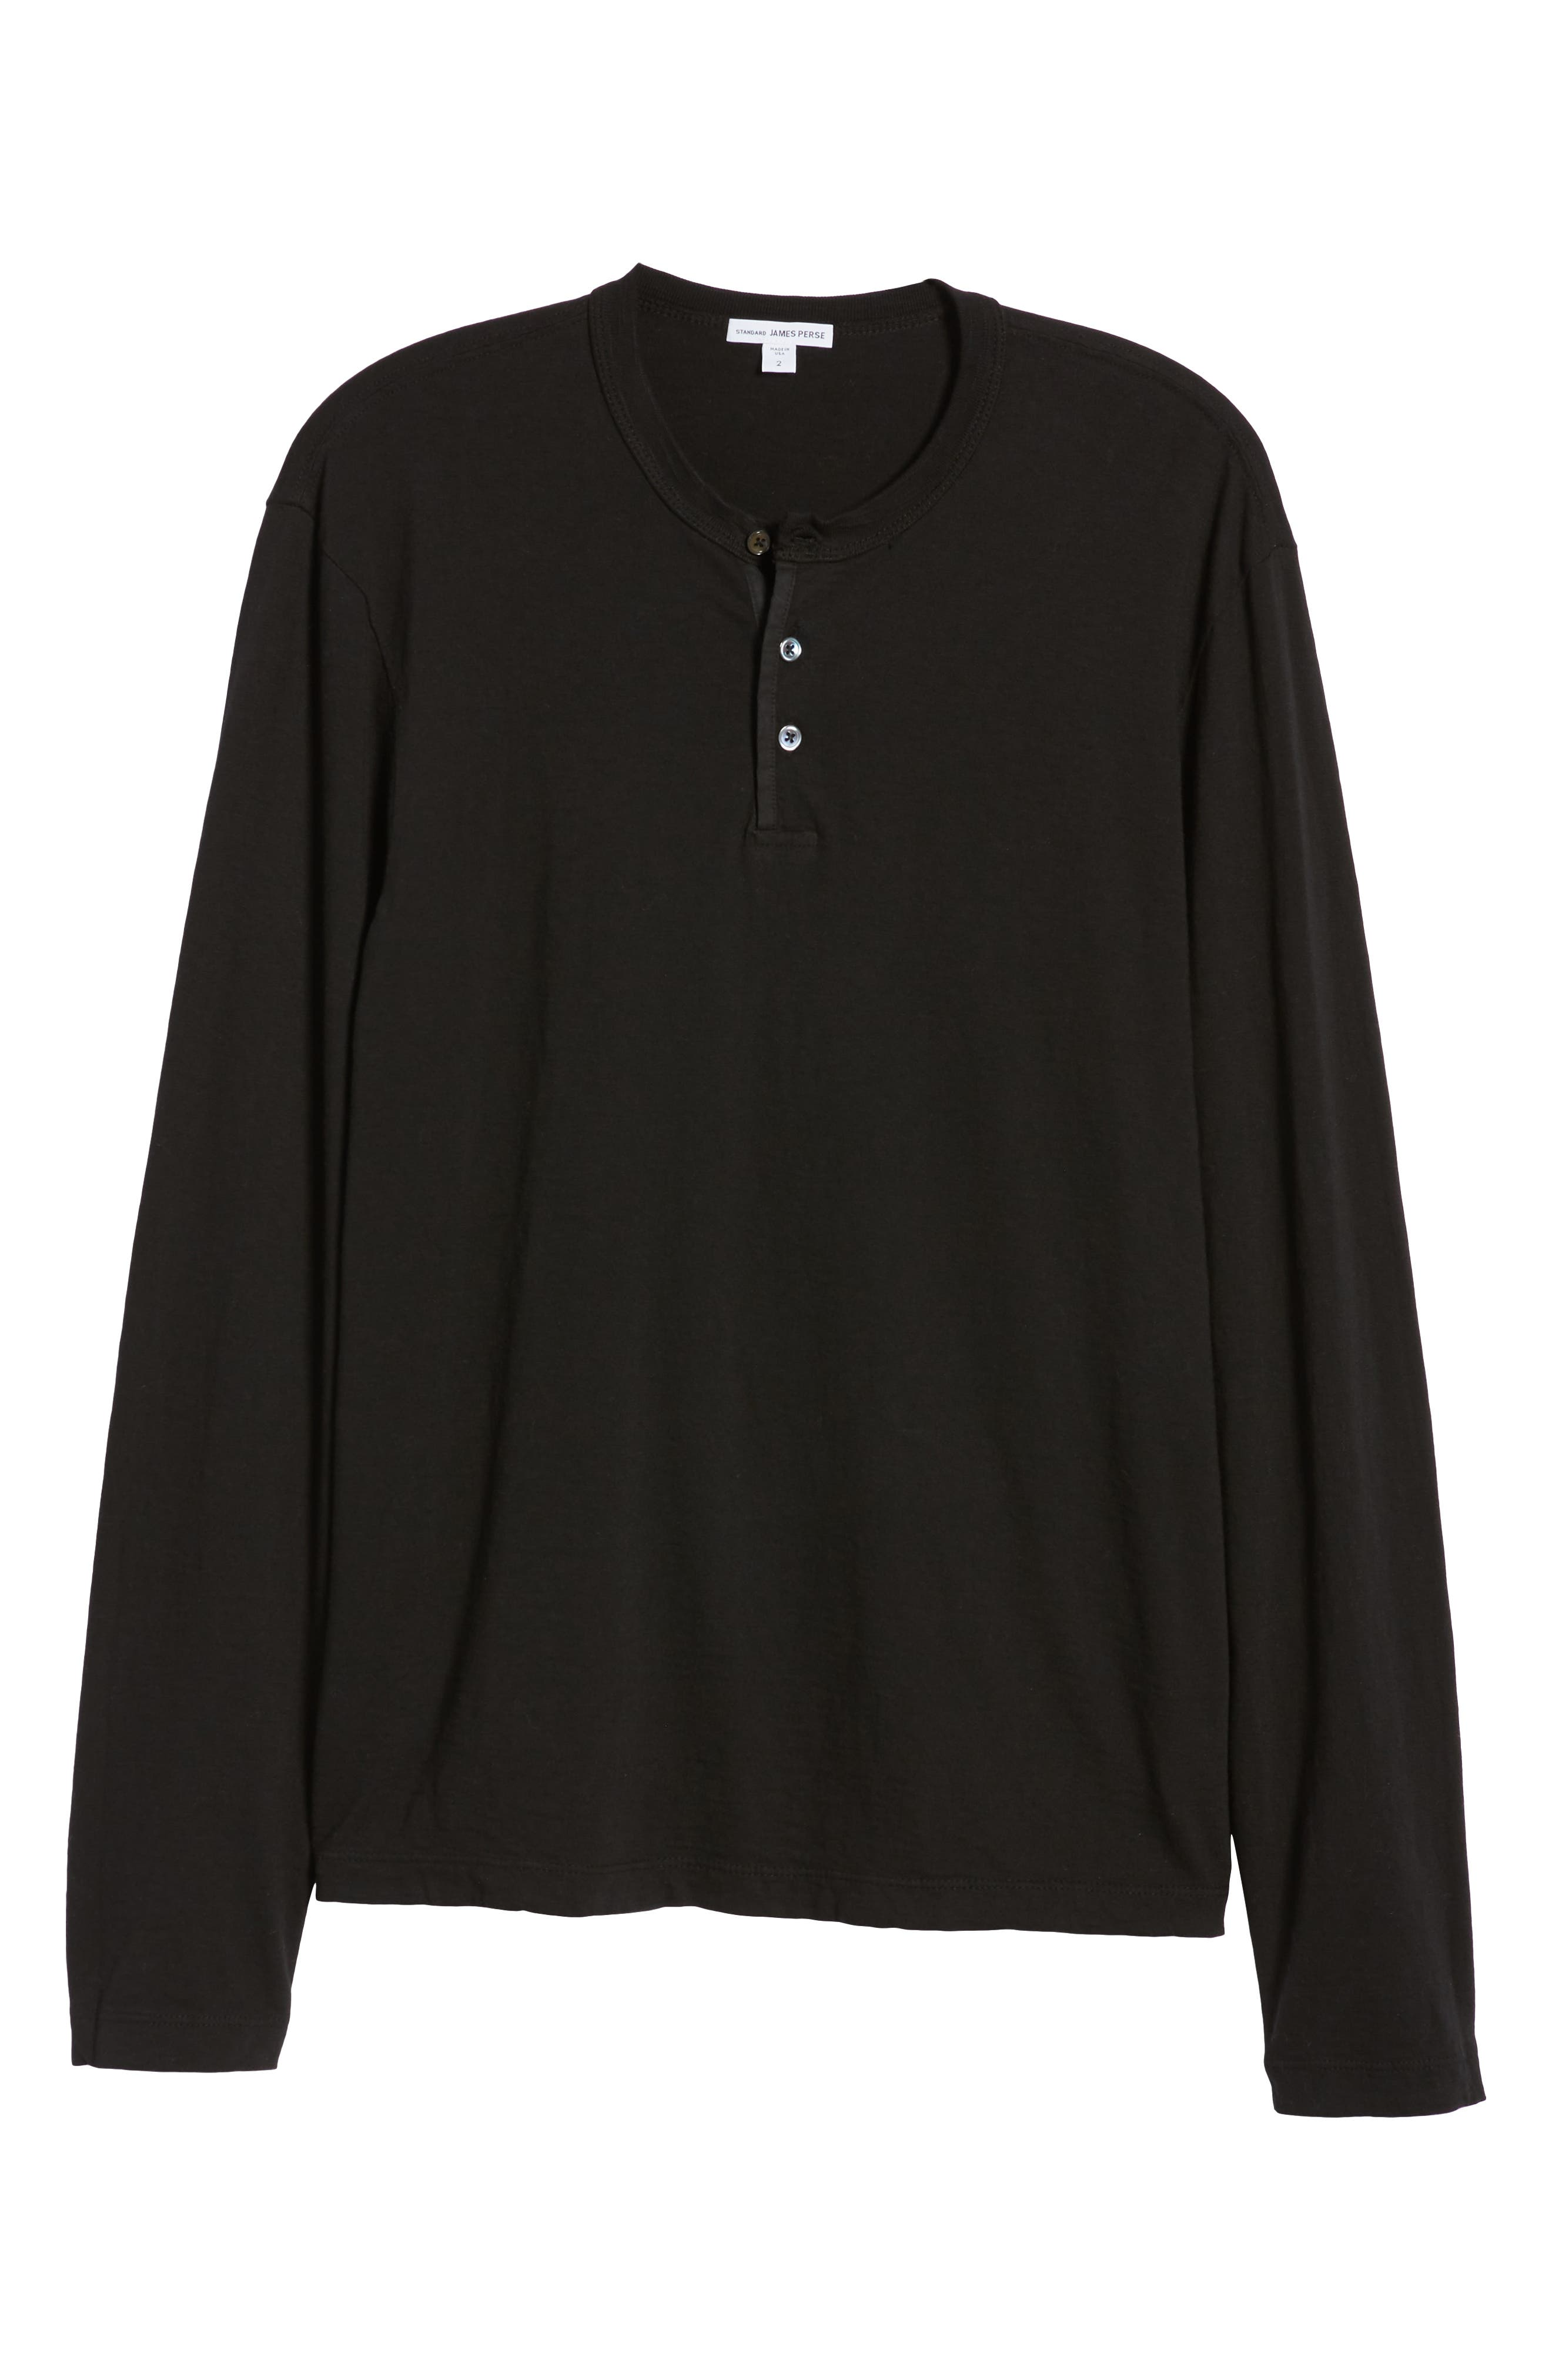 JAMES PERSE, Slim Fit Long Sleeve Henley, Alternate thumbnail 6, color, 001